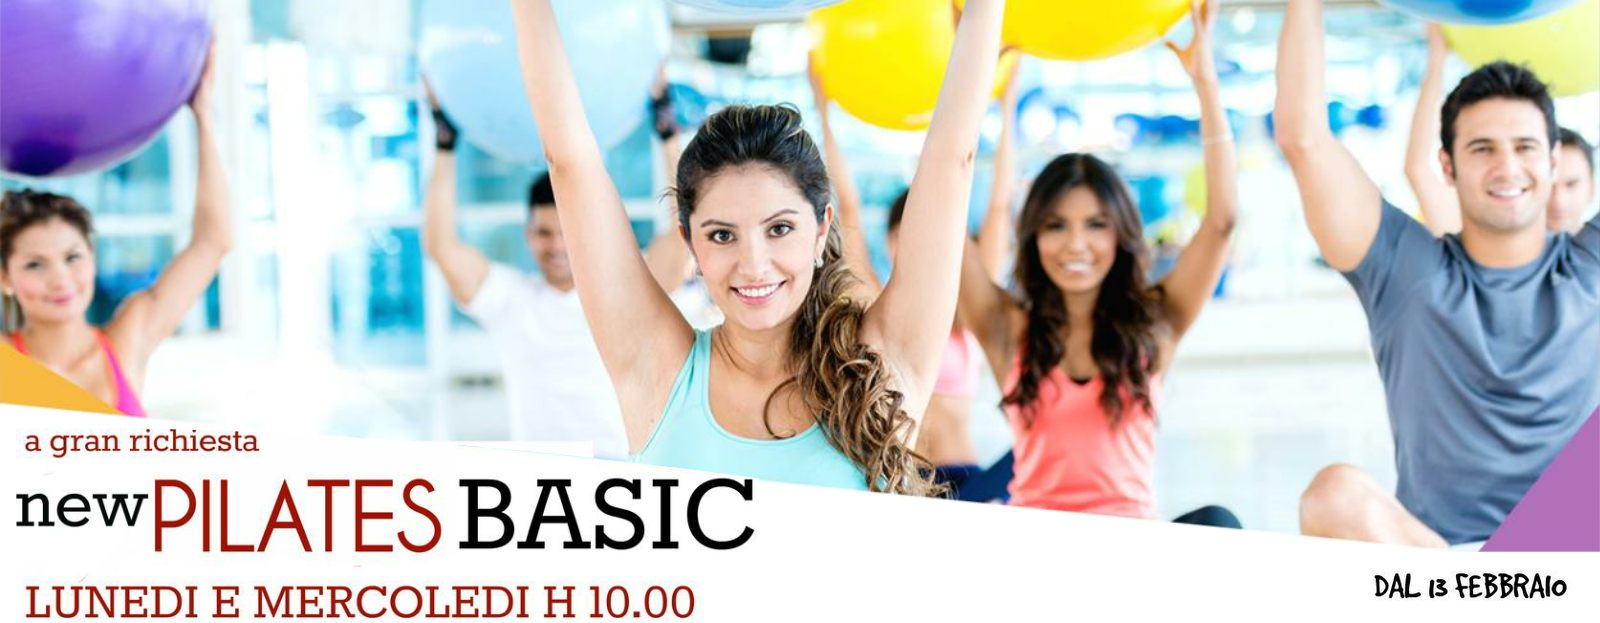 pilates basic resize